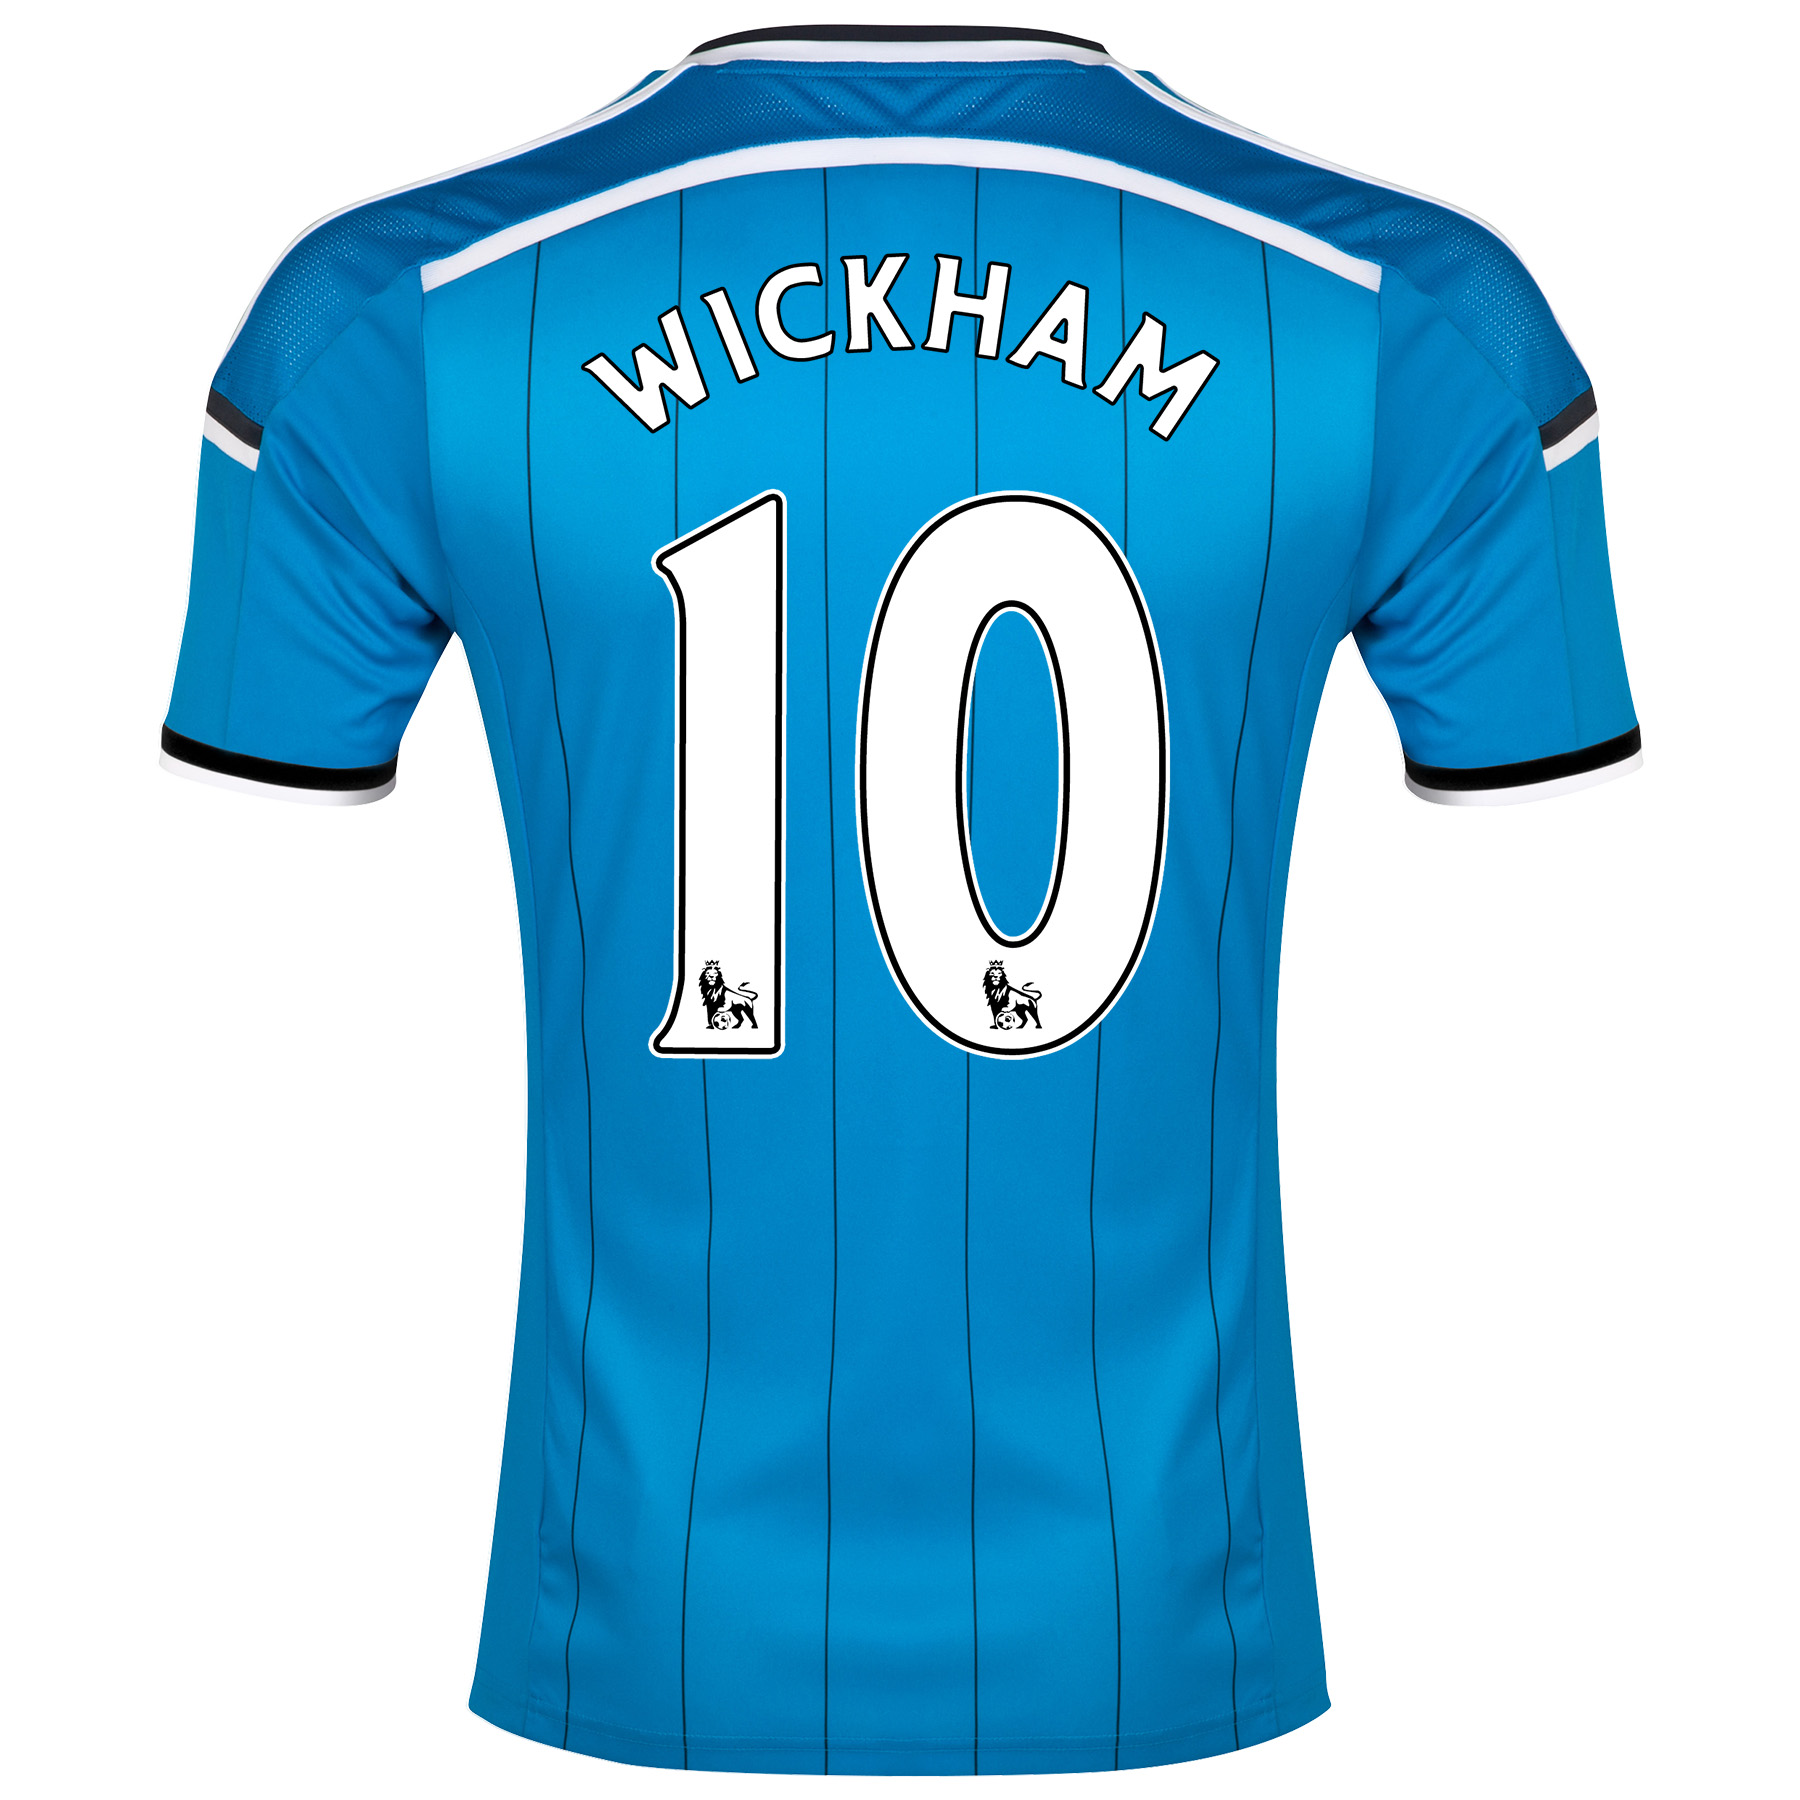 Sunderland Away Shirt 2014/15 Lt Blue with Wickham 10 printing